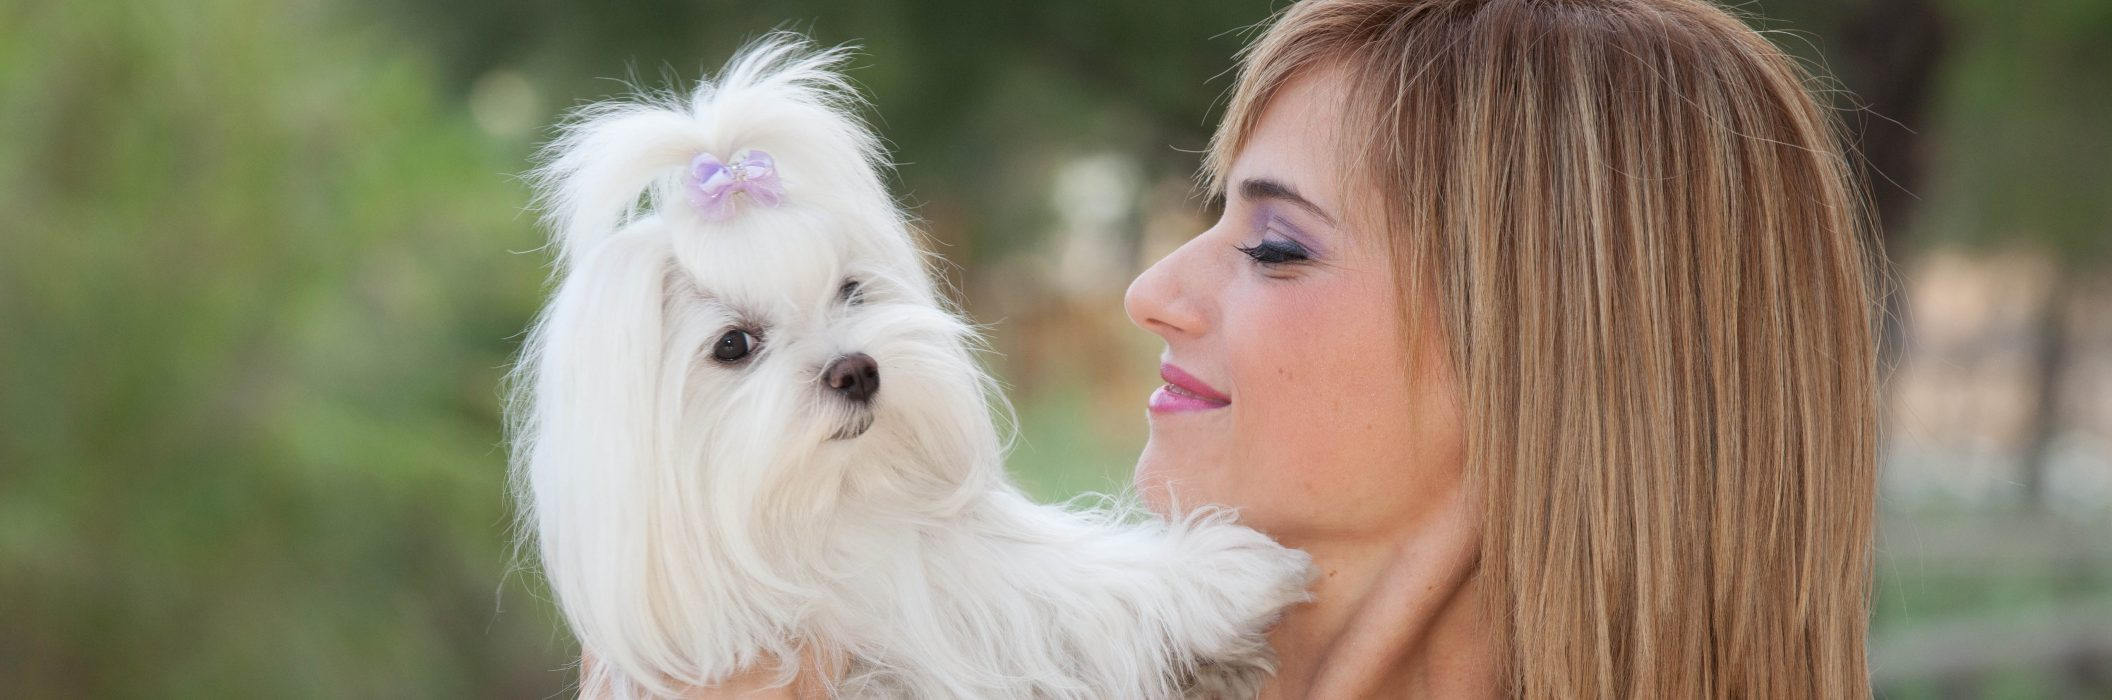 Lady with white dog for home page